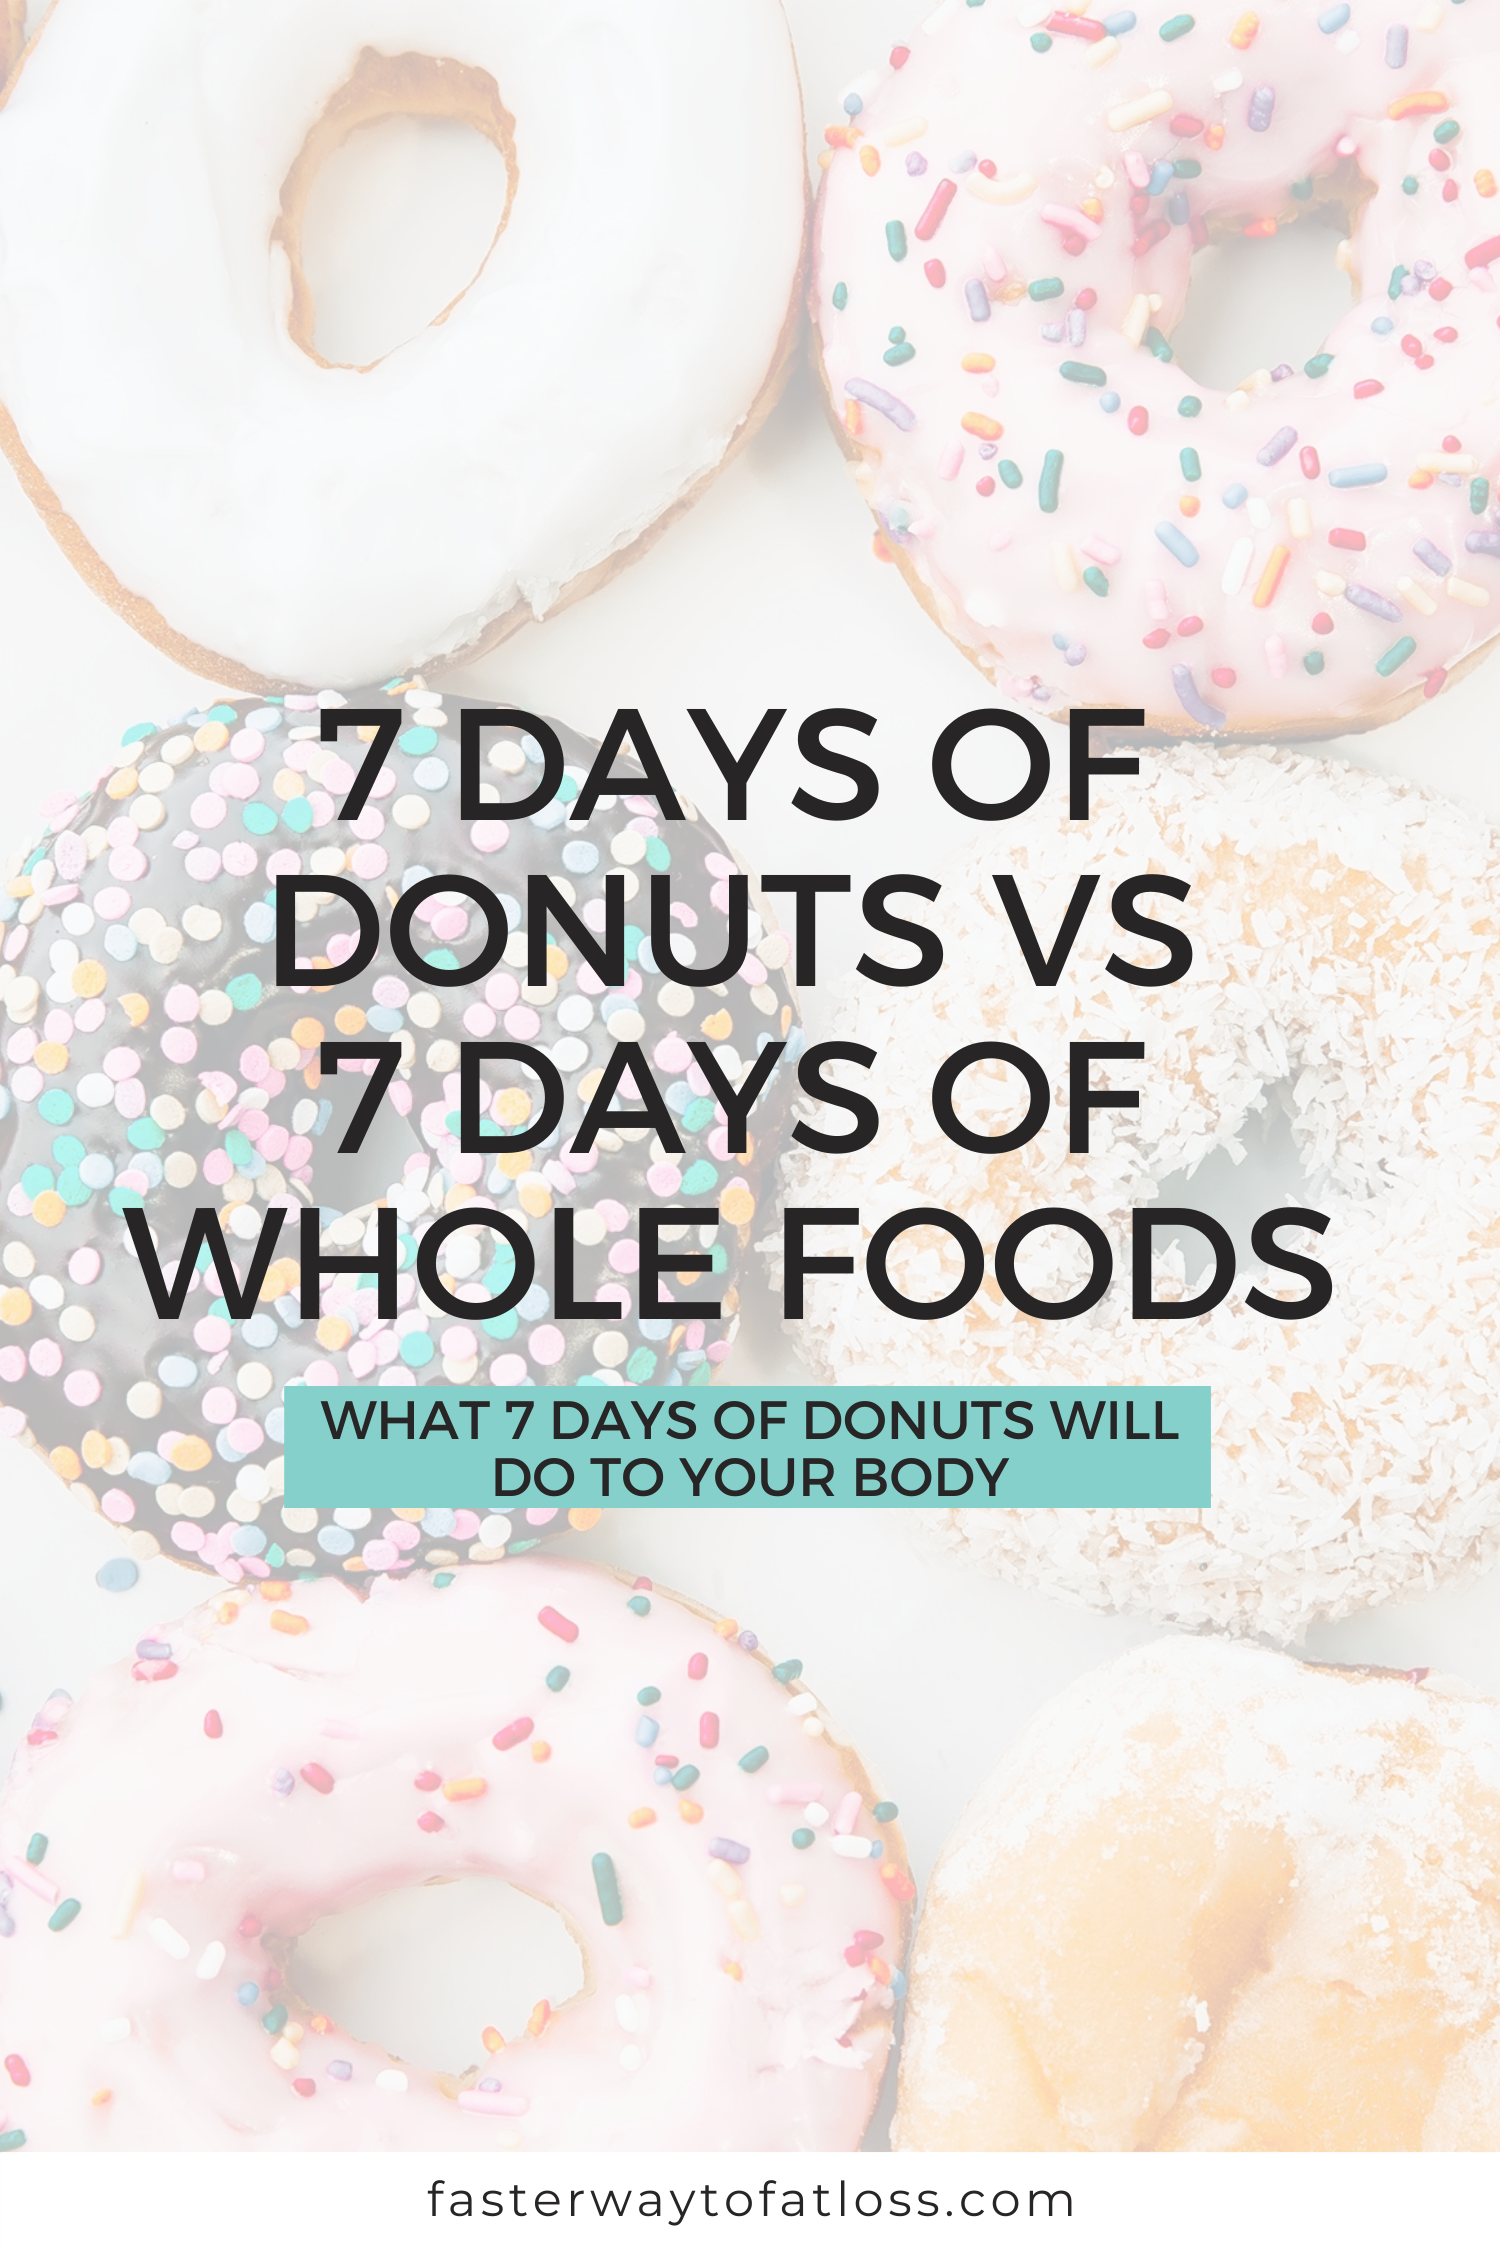 What 7 Days of Donuts Will Do To Your Body